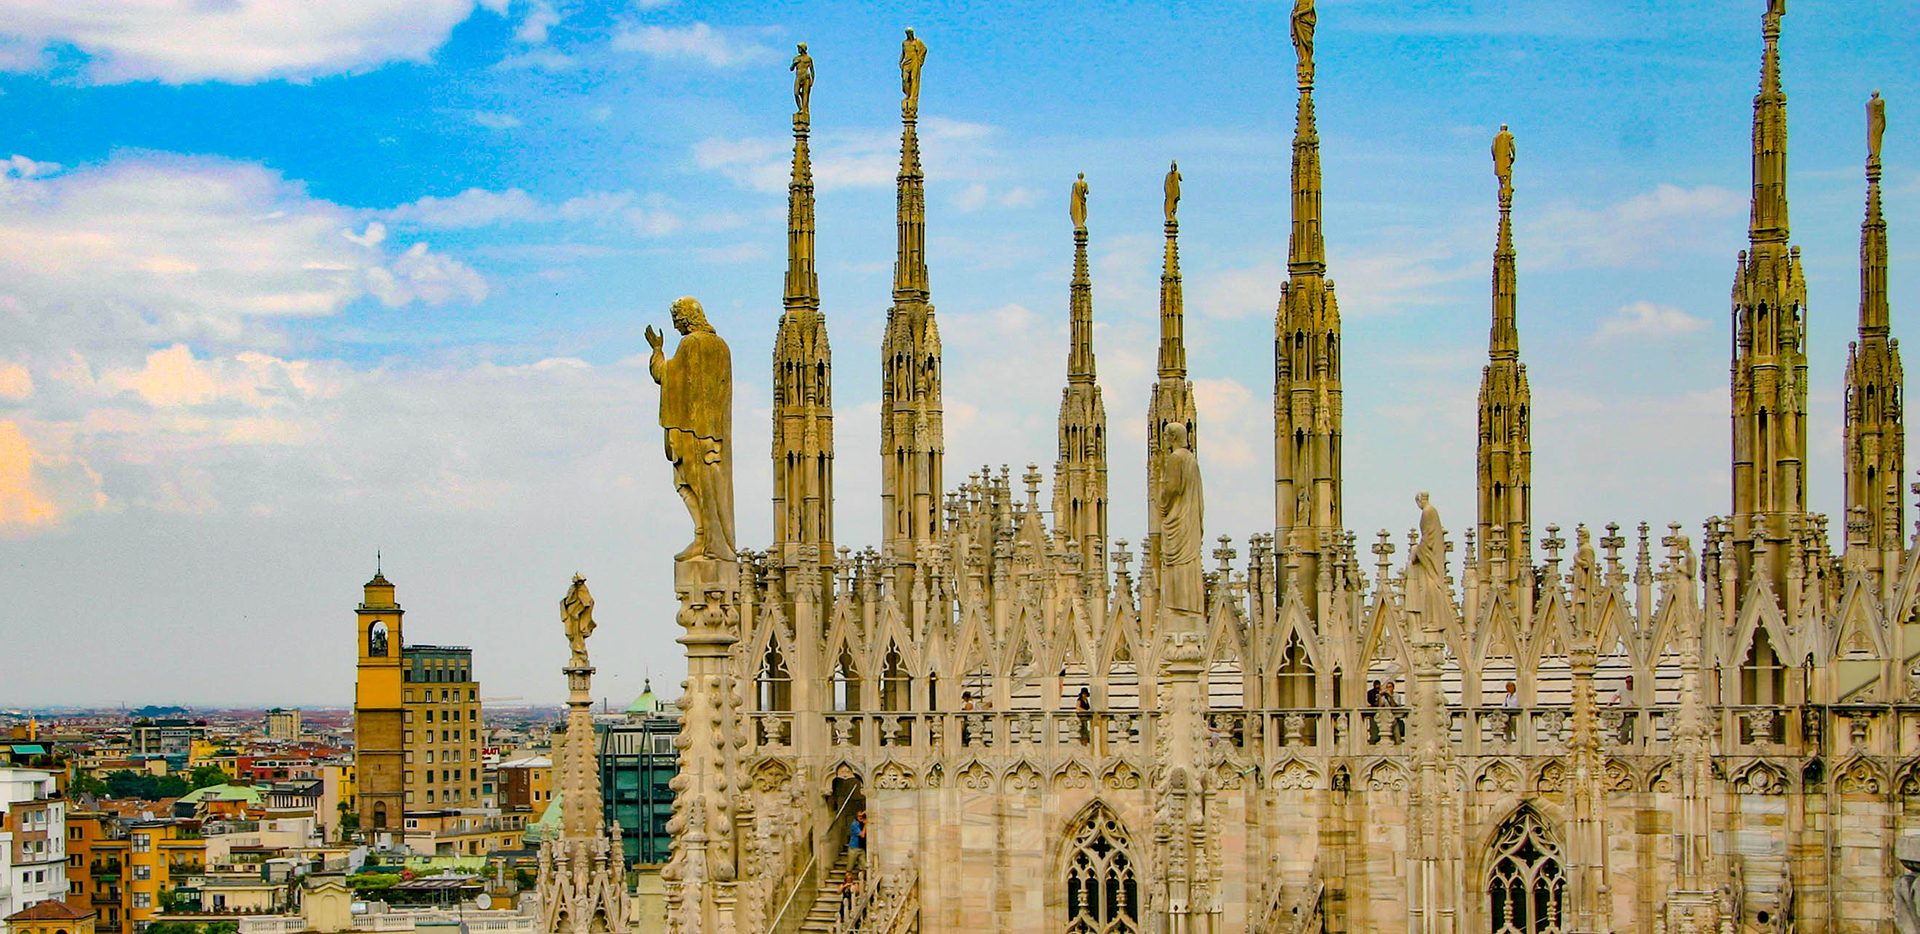 Duomo Di Milano Cathedral Rooftop Row of Statues